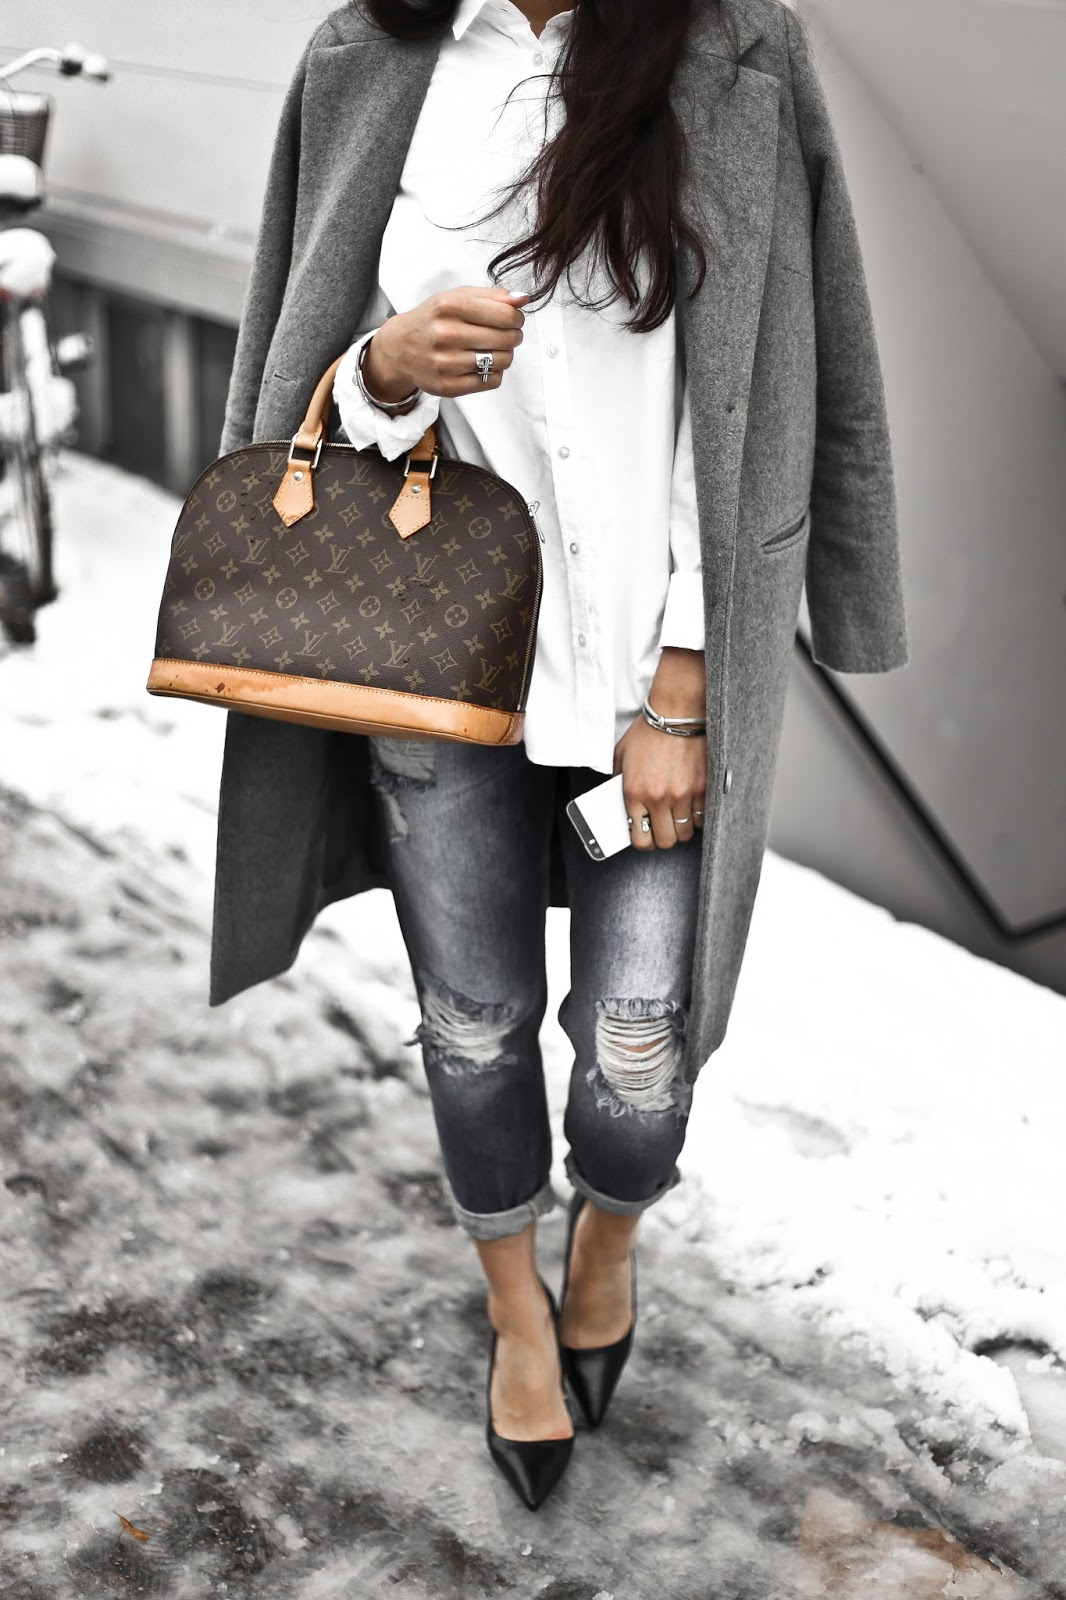 Magasin Du Nord, Mowoblog, ribbed jeans outfit, brand collaboration, signature look, grey coat jeans white shirt